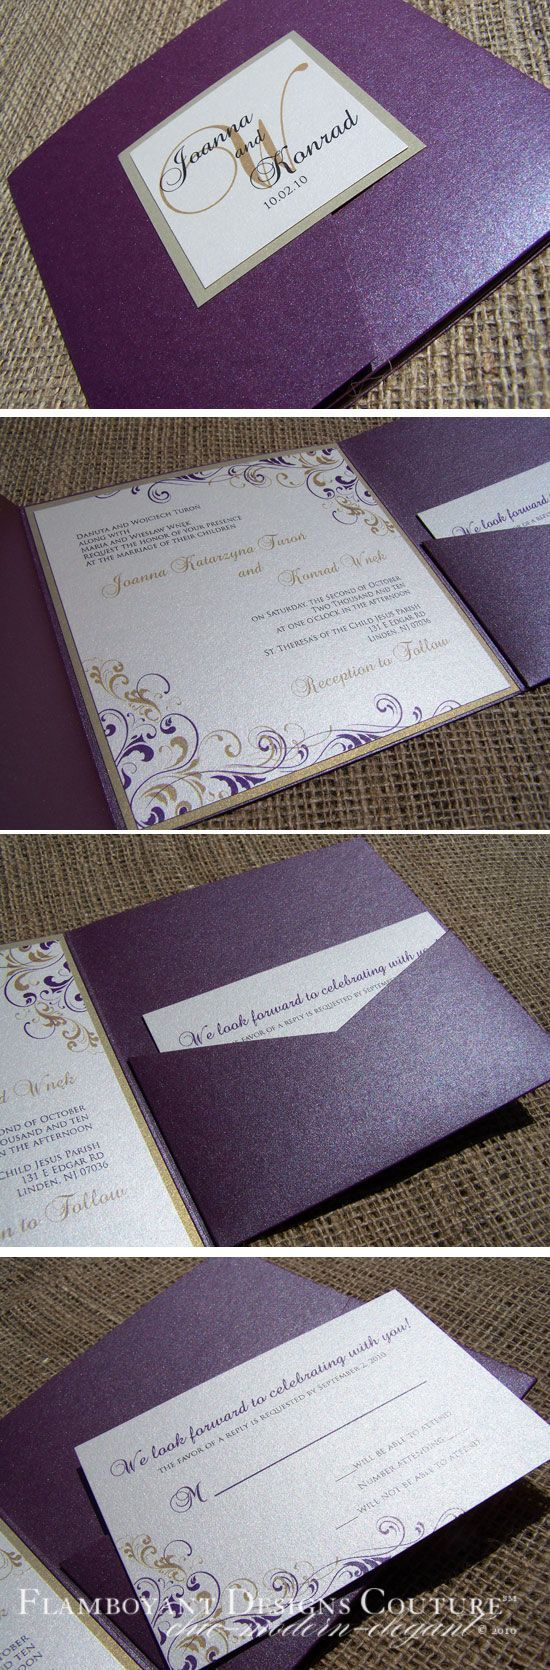 Plum and Gold Pocket Fold Invitations - The Wedding Chicks I need to find who makes these